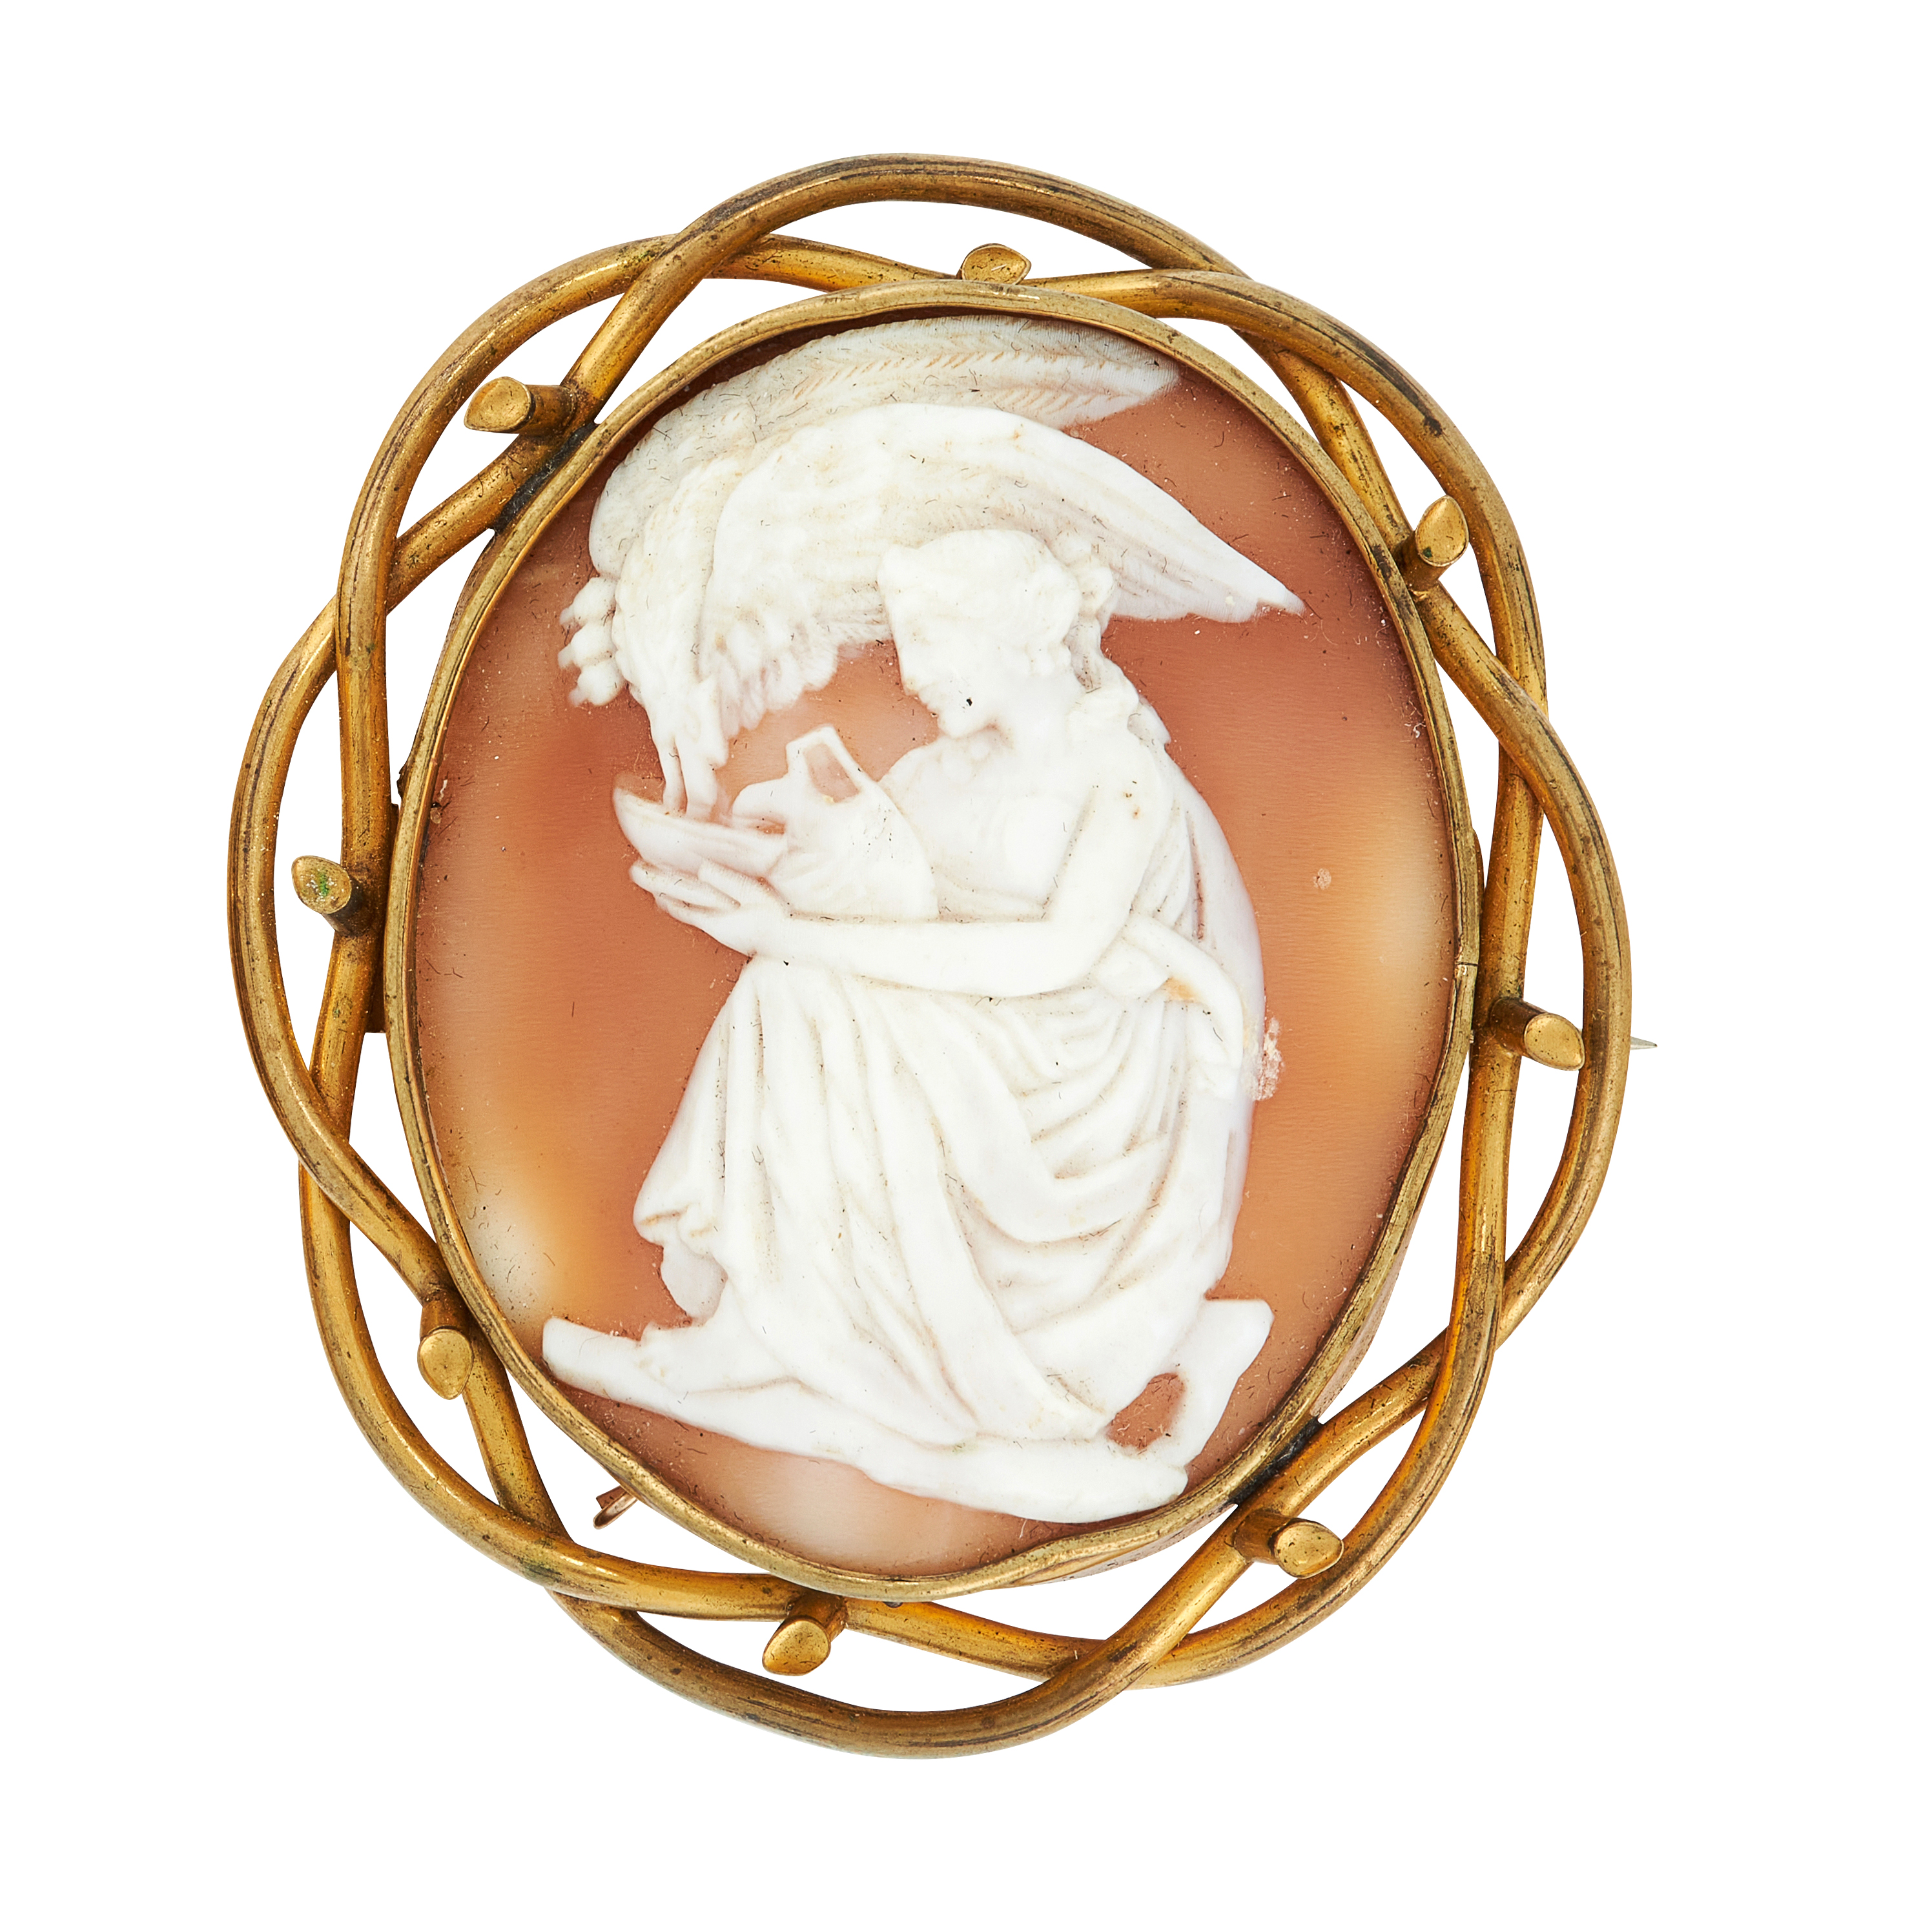 AN ANTIQUE CARVED CAMEO BROOCH, 19TH CENTURY in yellow gold, the oval cameo carved in detail to